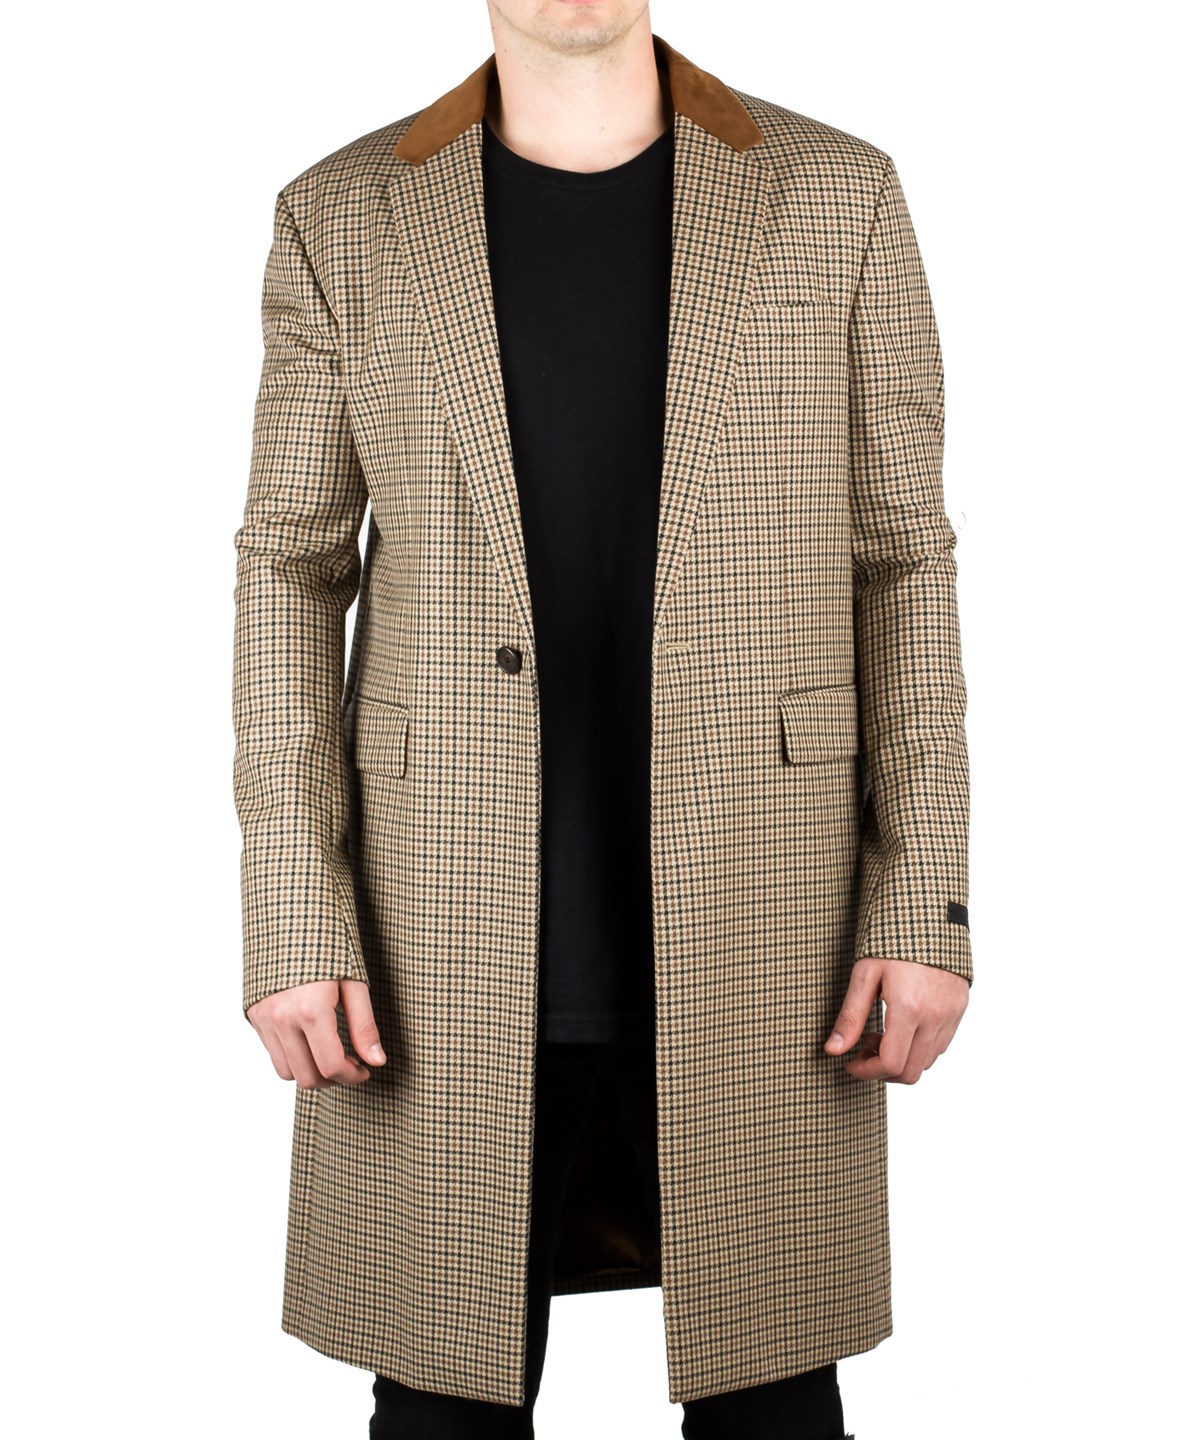 Prada Men's Notched Lapel Trench Coat Jacket Houndstooth Camel Tobacco In Brown